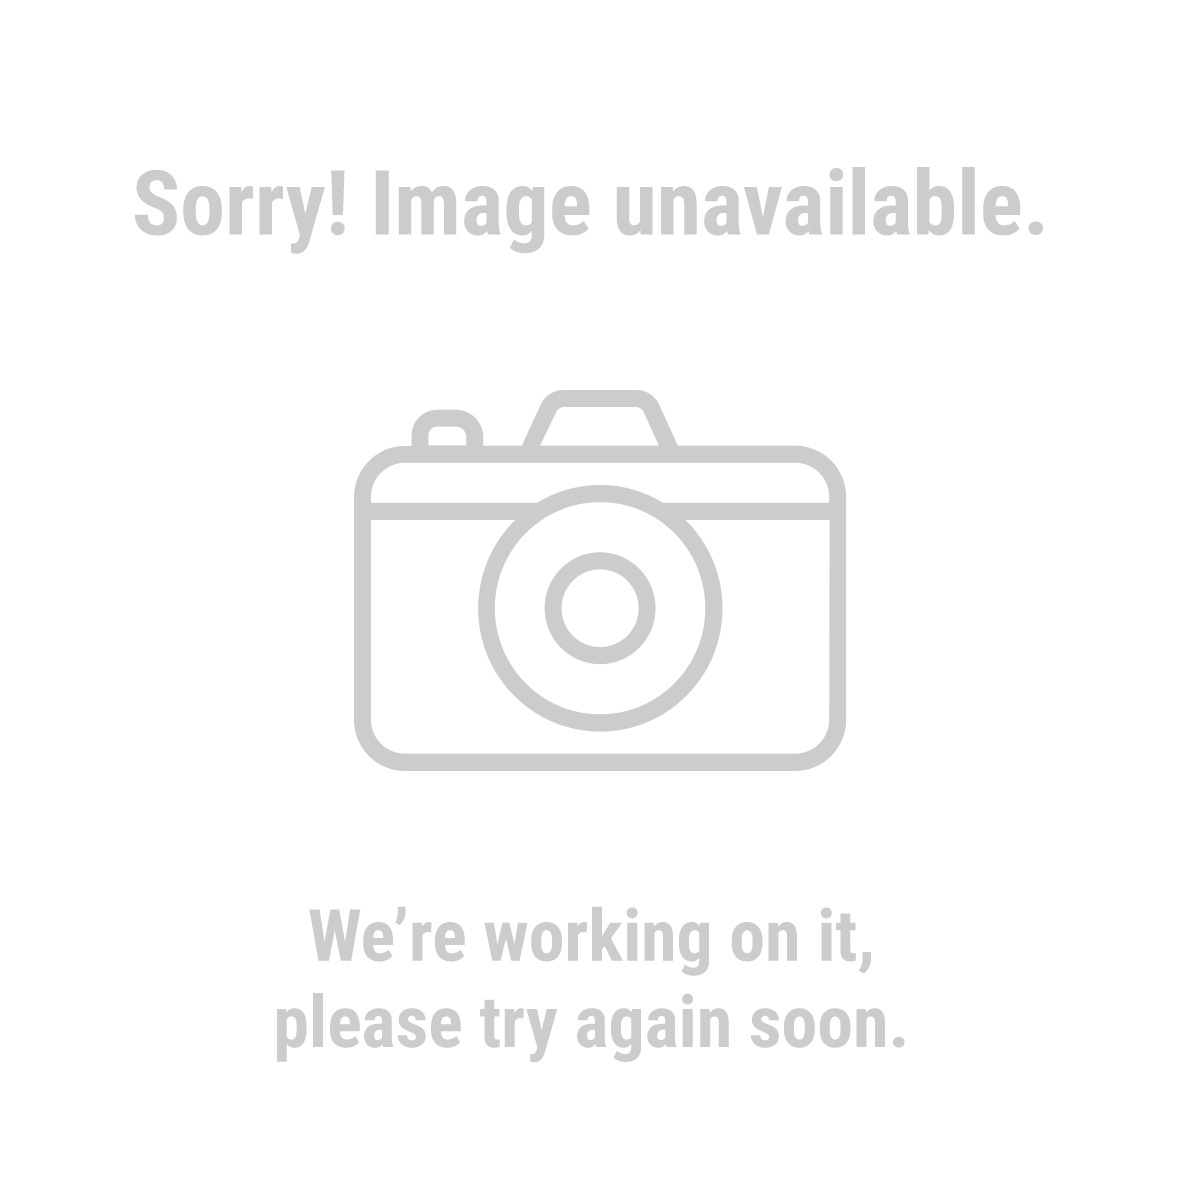 mount press machine